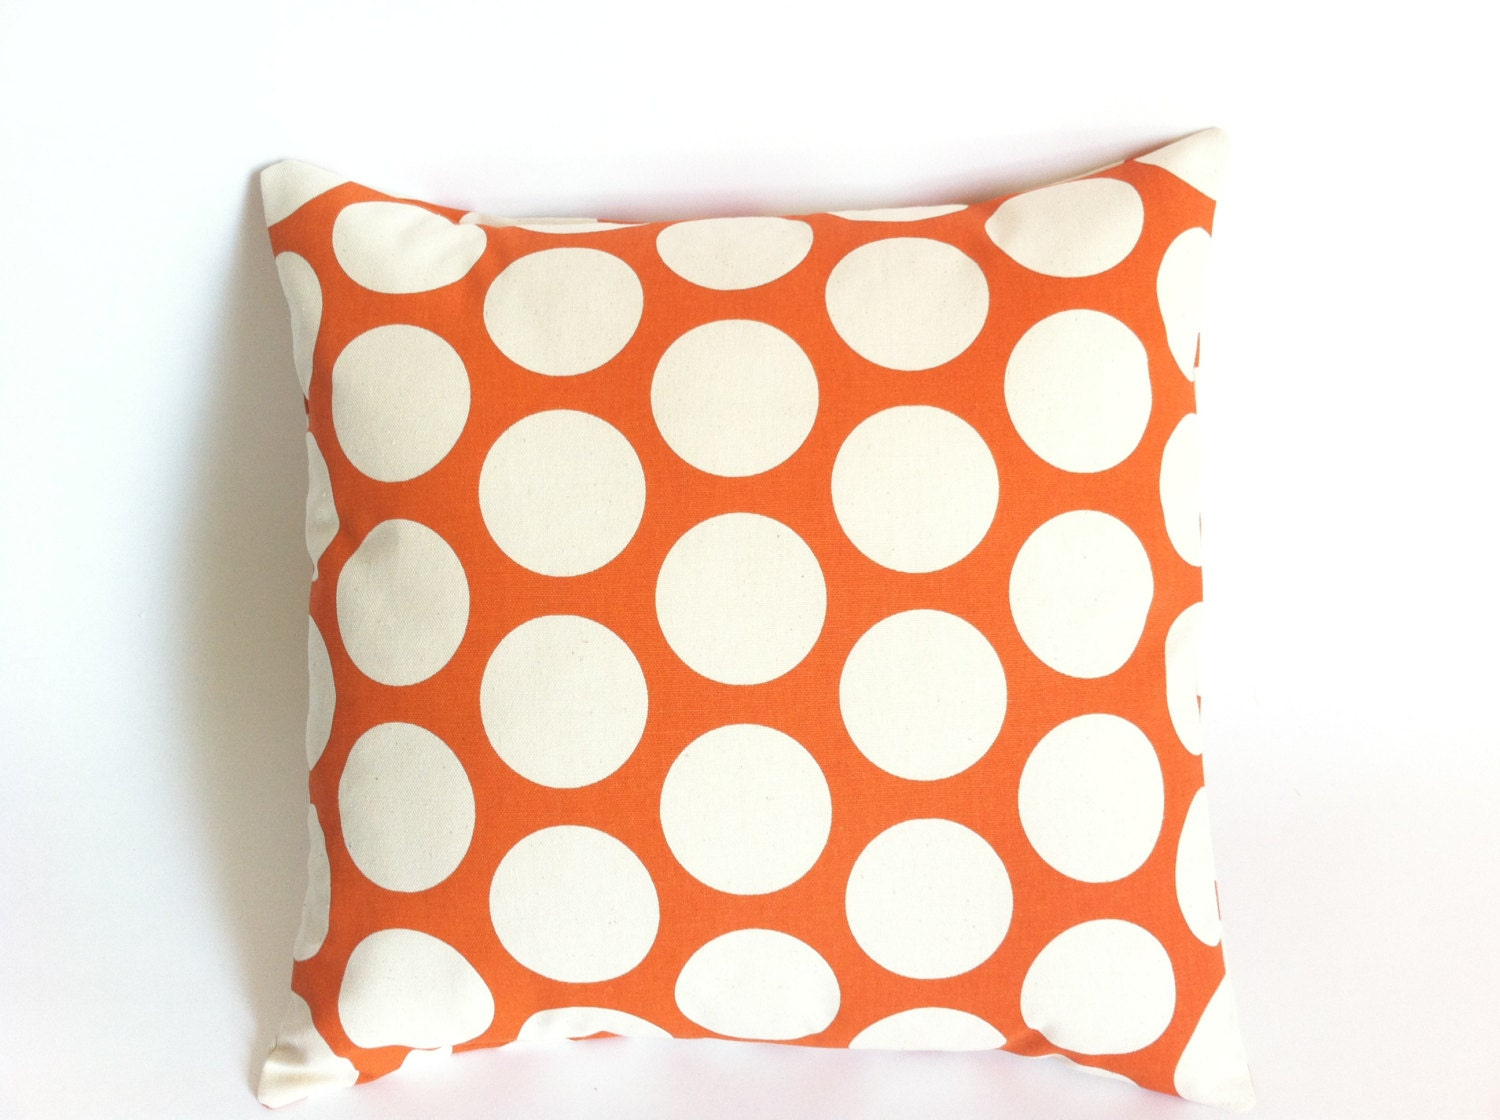 One Decorative Throw Pillow Cover Orange Polka Dot by Pillomatic